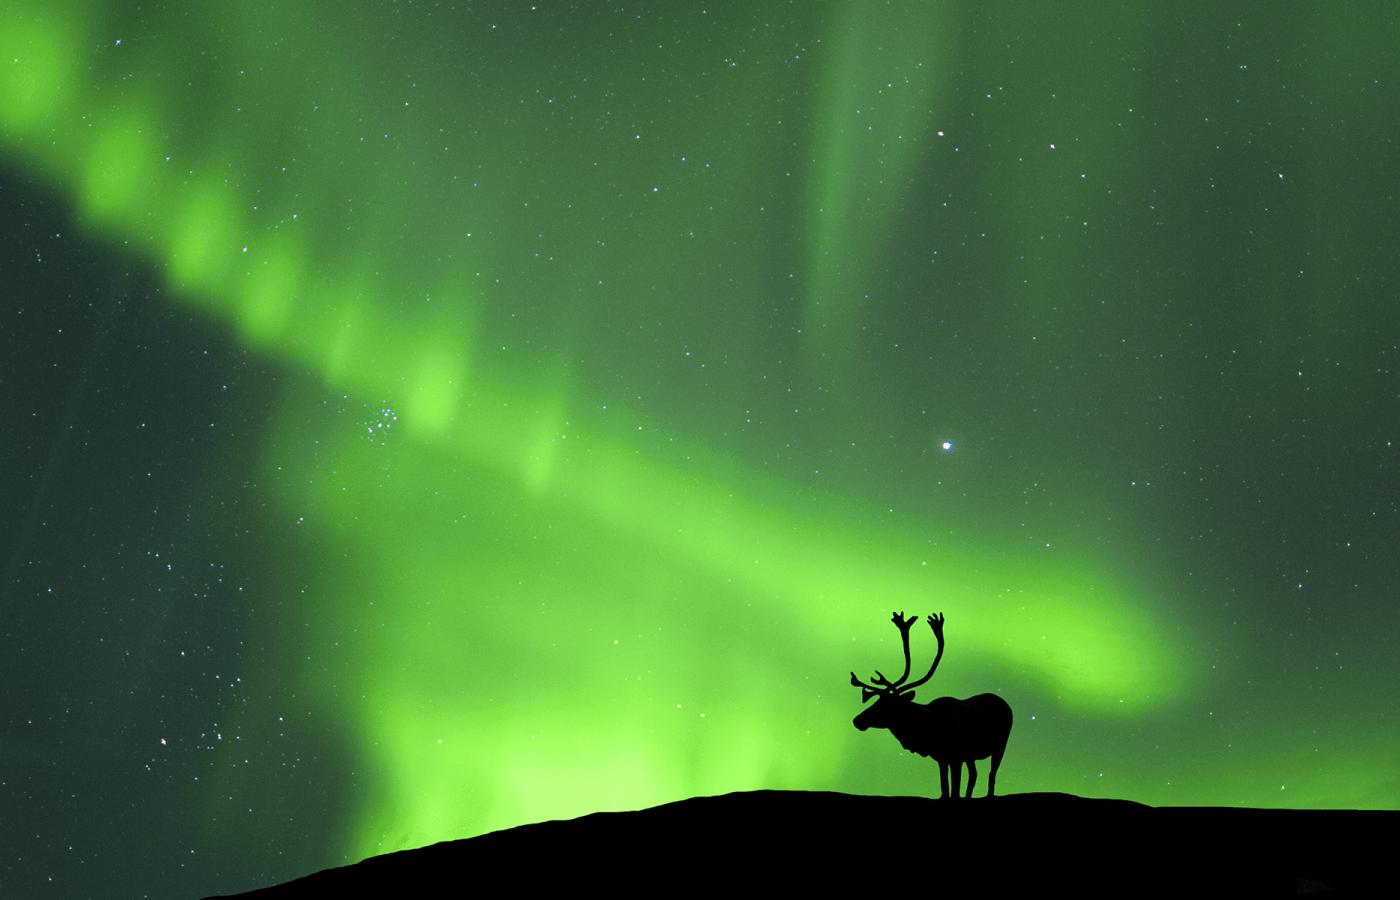 the silhouette of a caribou stands on a mountain top watching the Northern Lights